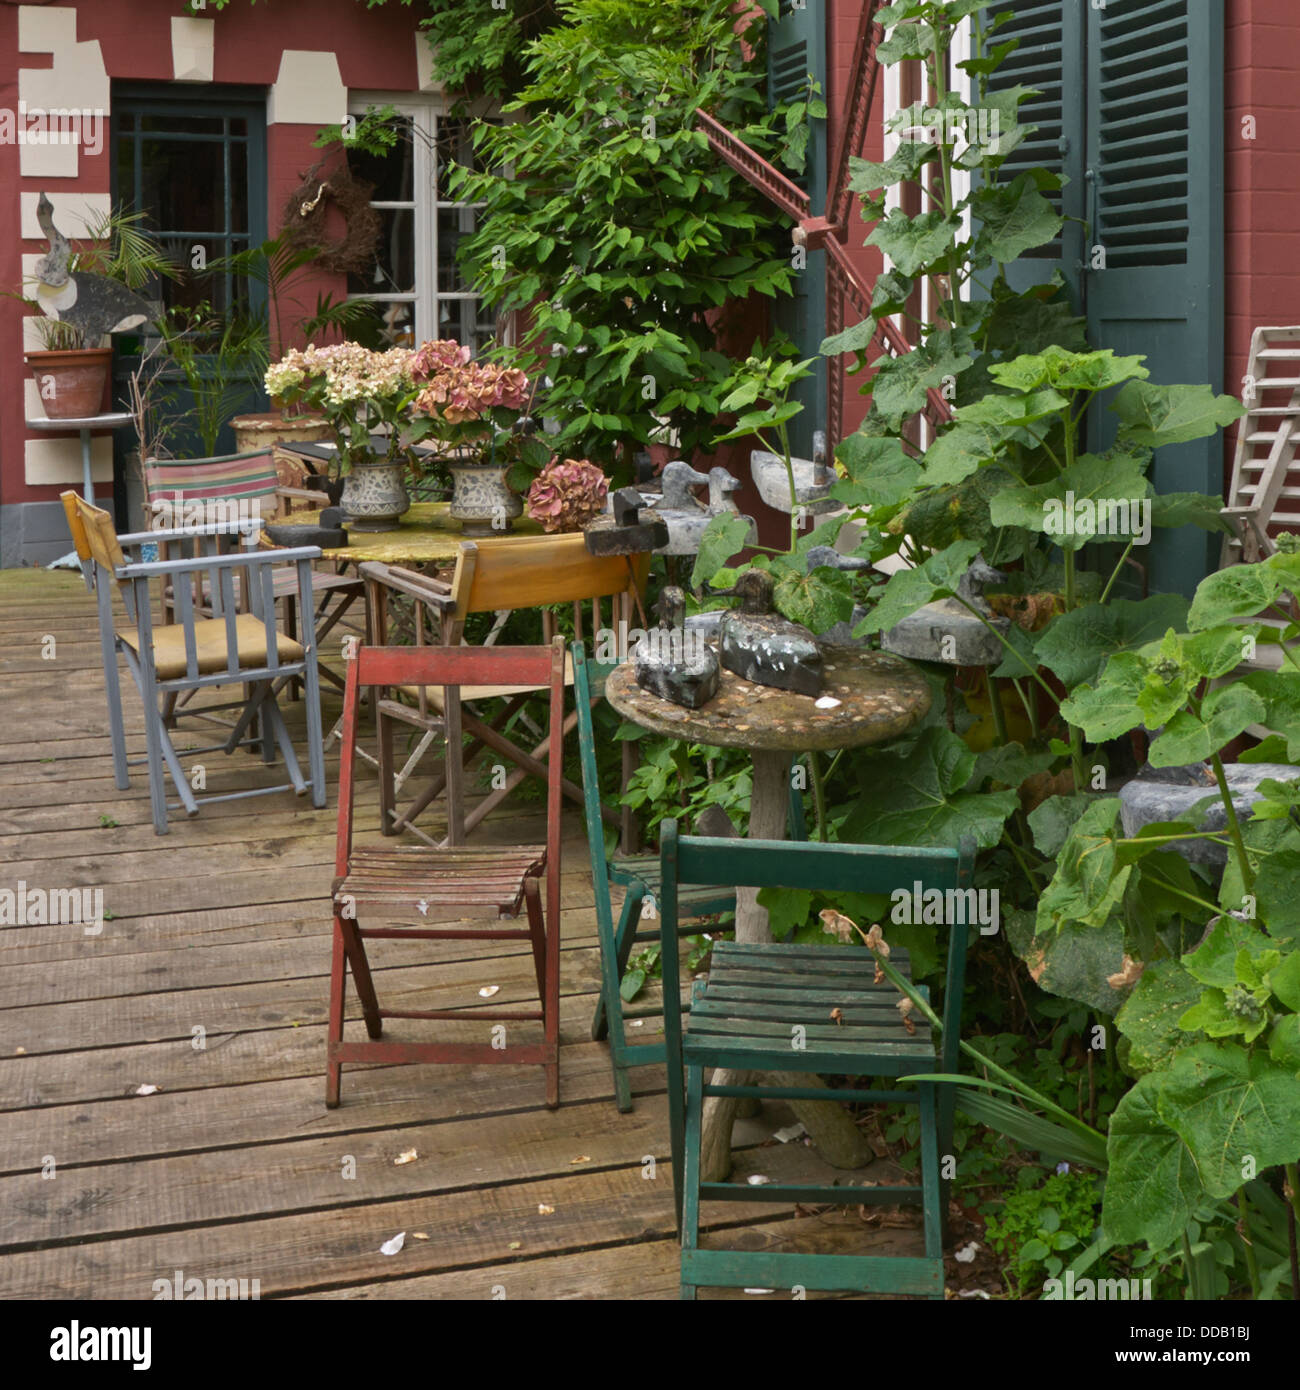 Rustic chairs in muted colours in French courtyard with flowers and foliage - Stock Image